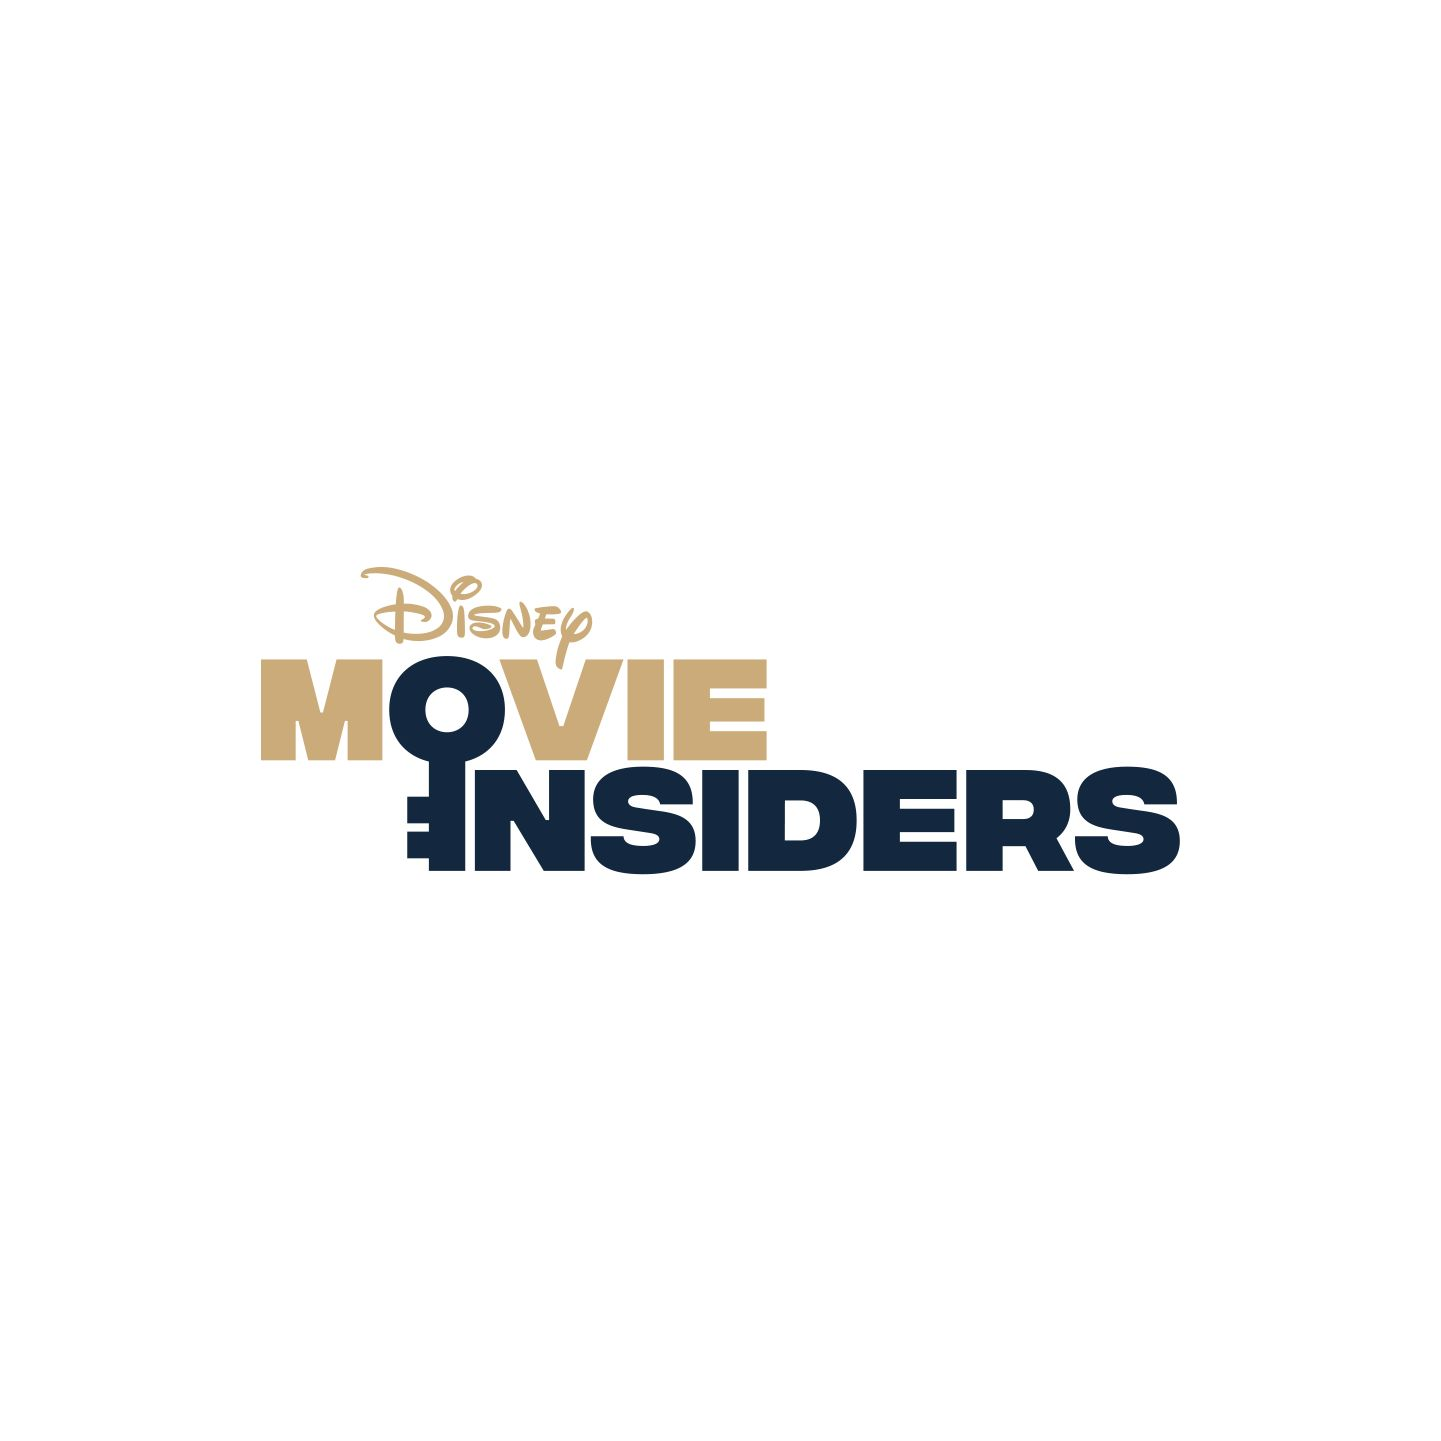 What's New Join Disney Movie Club -Get 5 Movies for $1 and 500 bonus points- Click to See Details